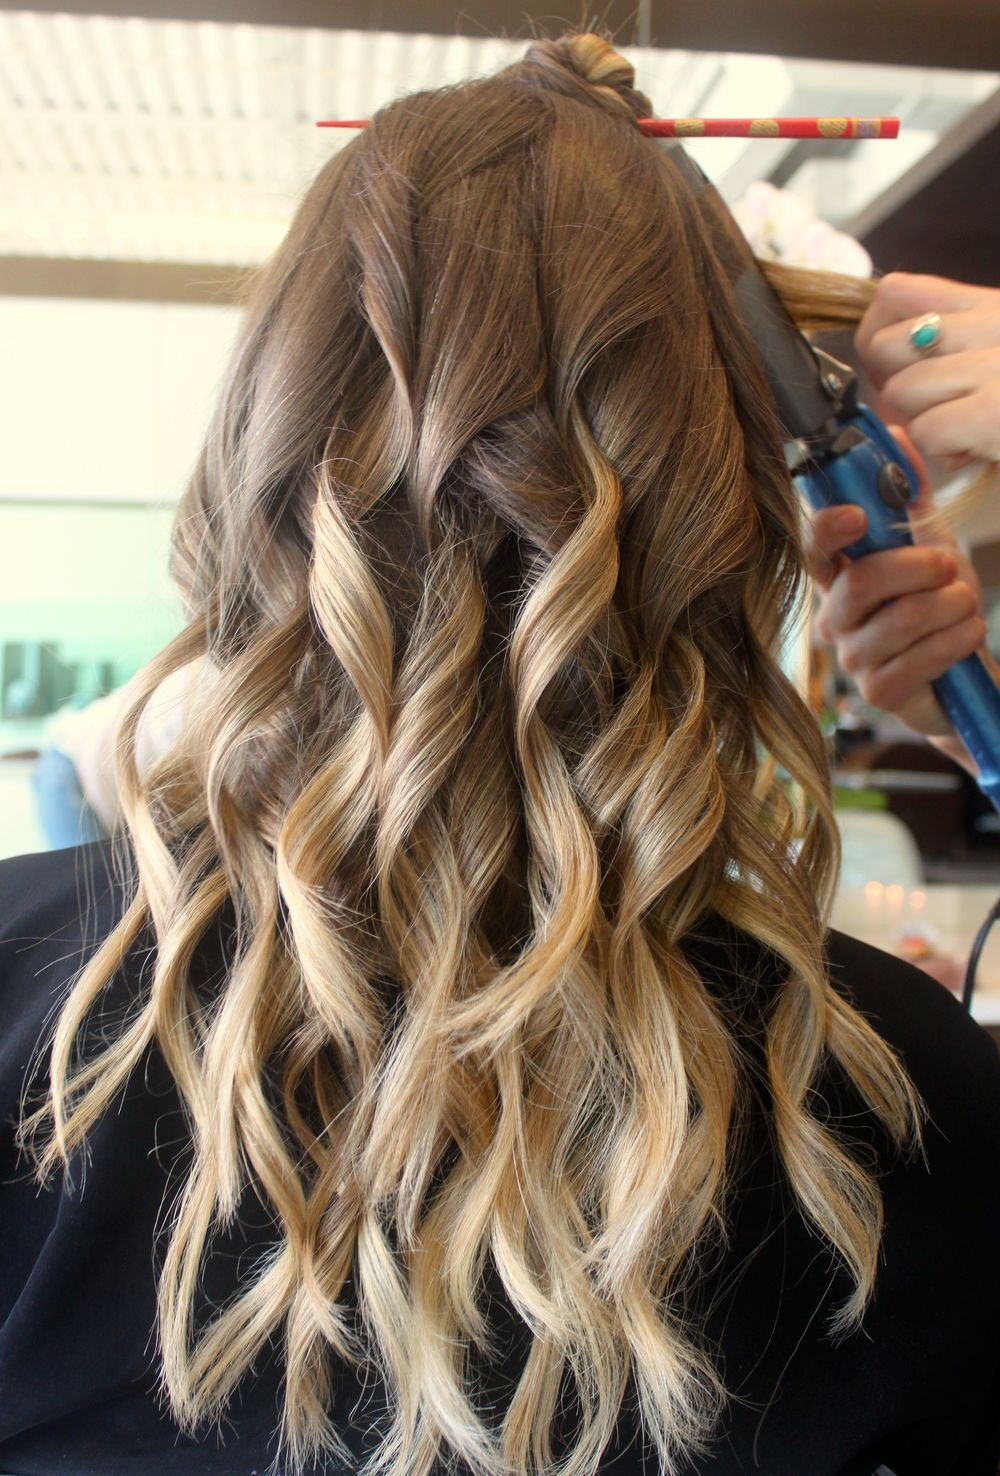 Hair_Color_By_Carlos-loose_curls-bronde-bayalage.jpg